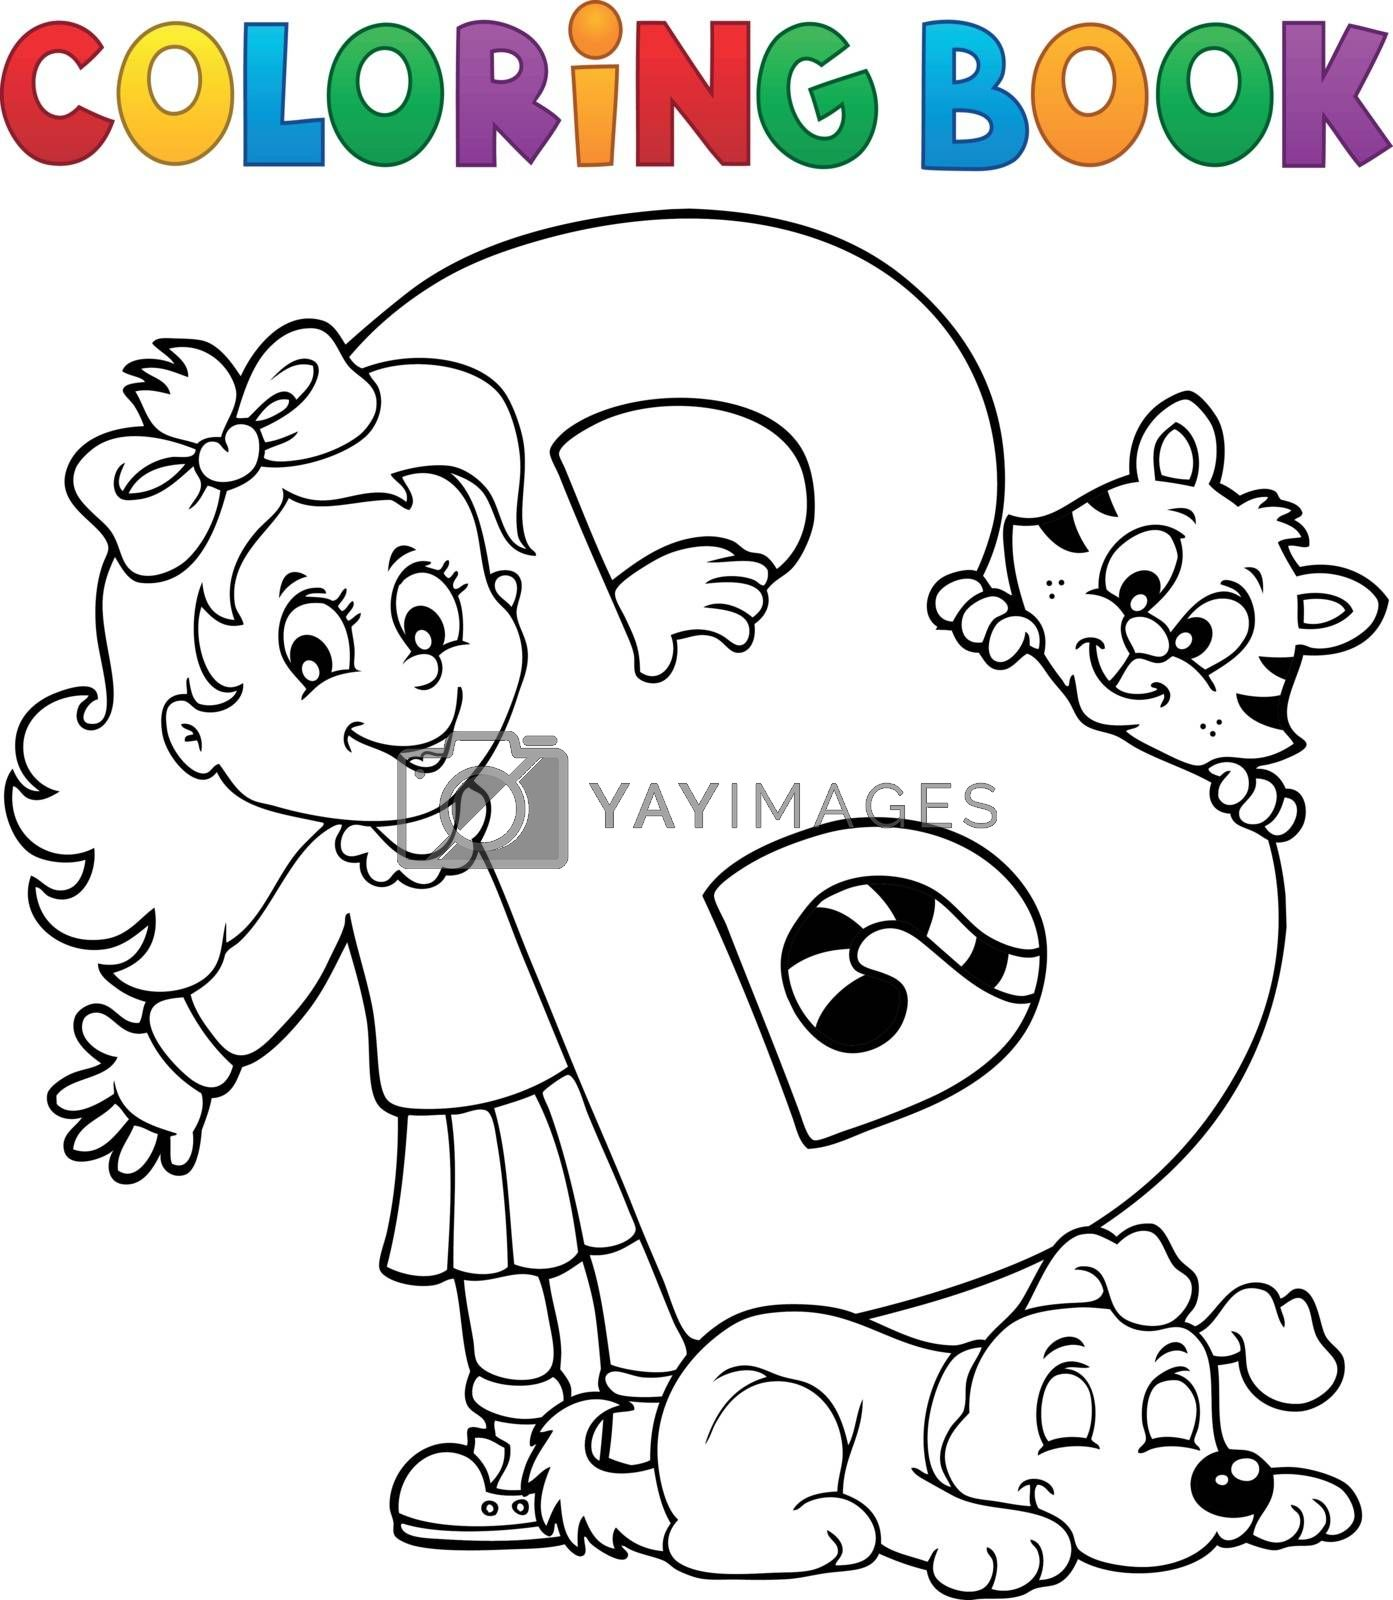 Coloring book girl and pets by letter B - eps10 vector illustration.